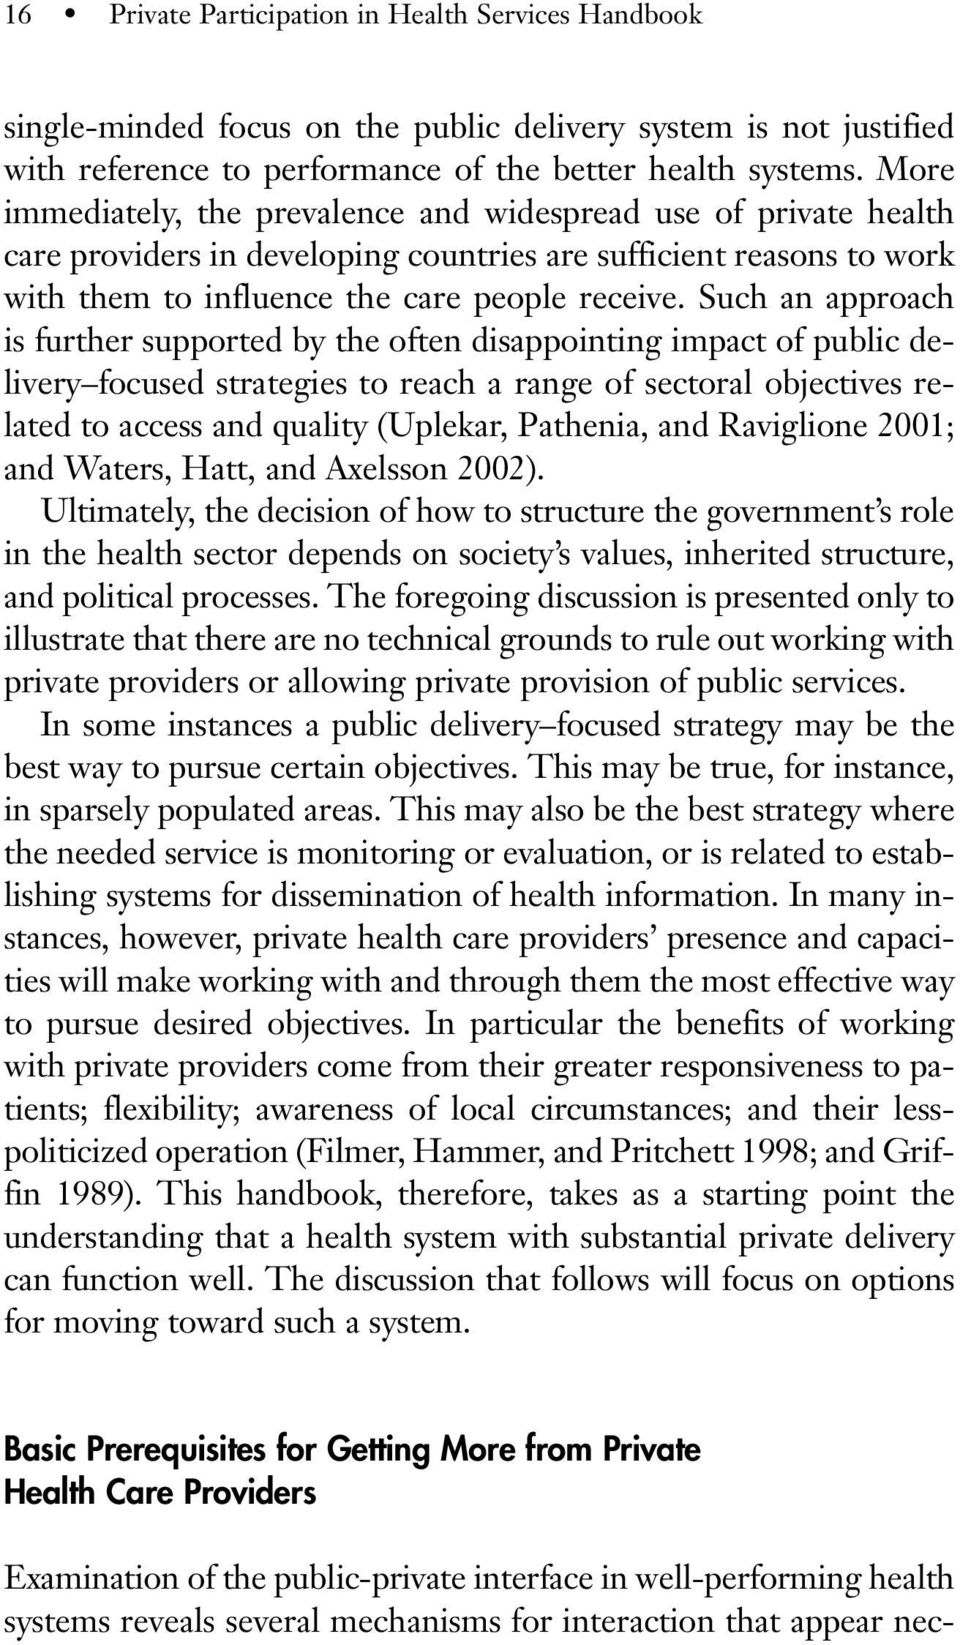 Such an approach is further supported by the often disappointing impact of public delivery focused strategies to reach a range of sectoral objectives related to access and quality (Uplekar, Pathenia,